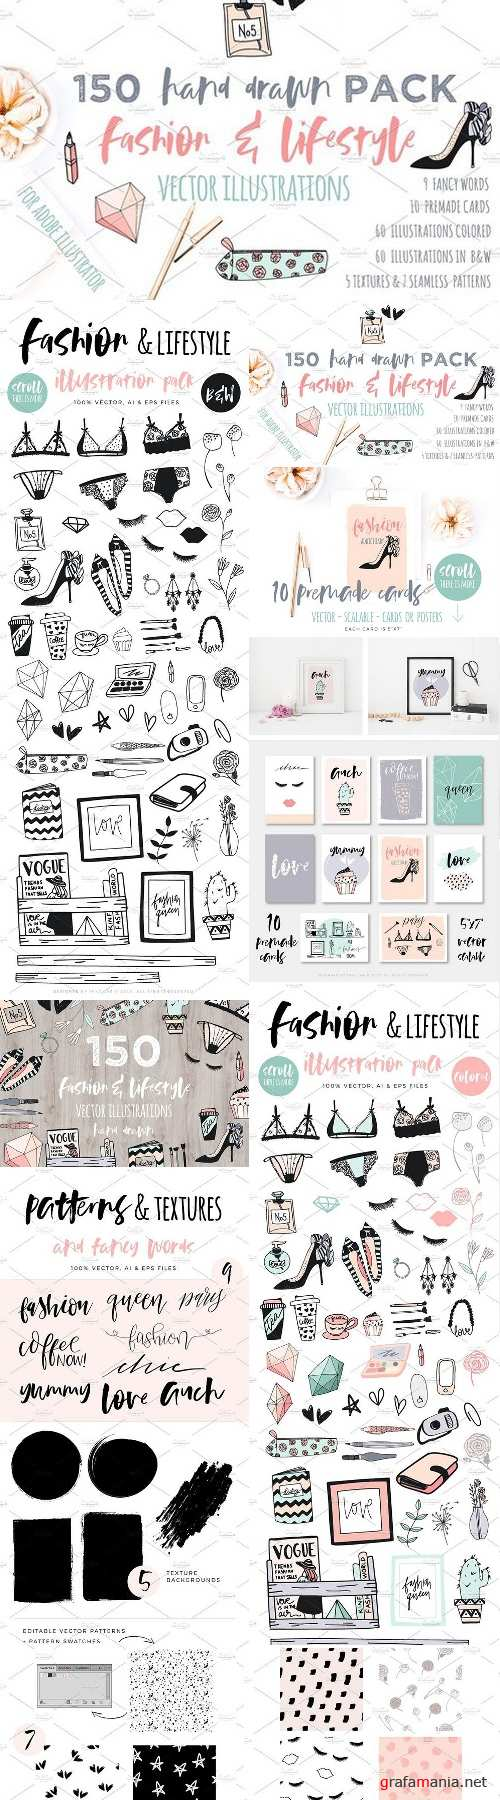 Fashion/Lifestyle illustration pack 1547202